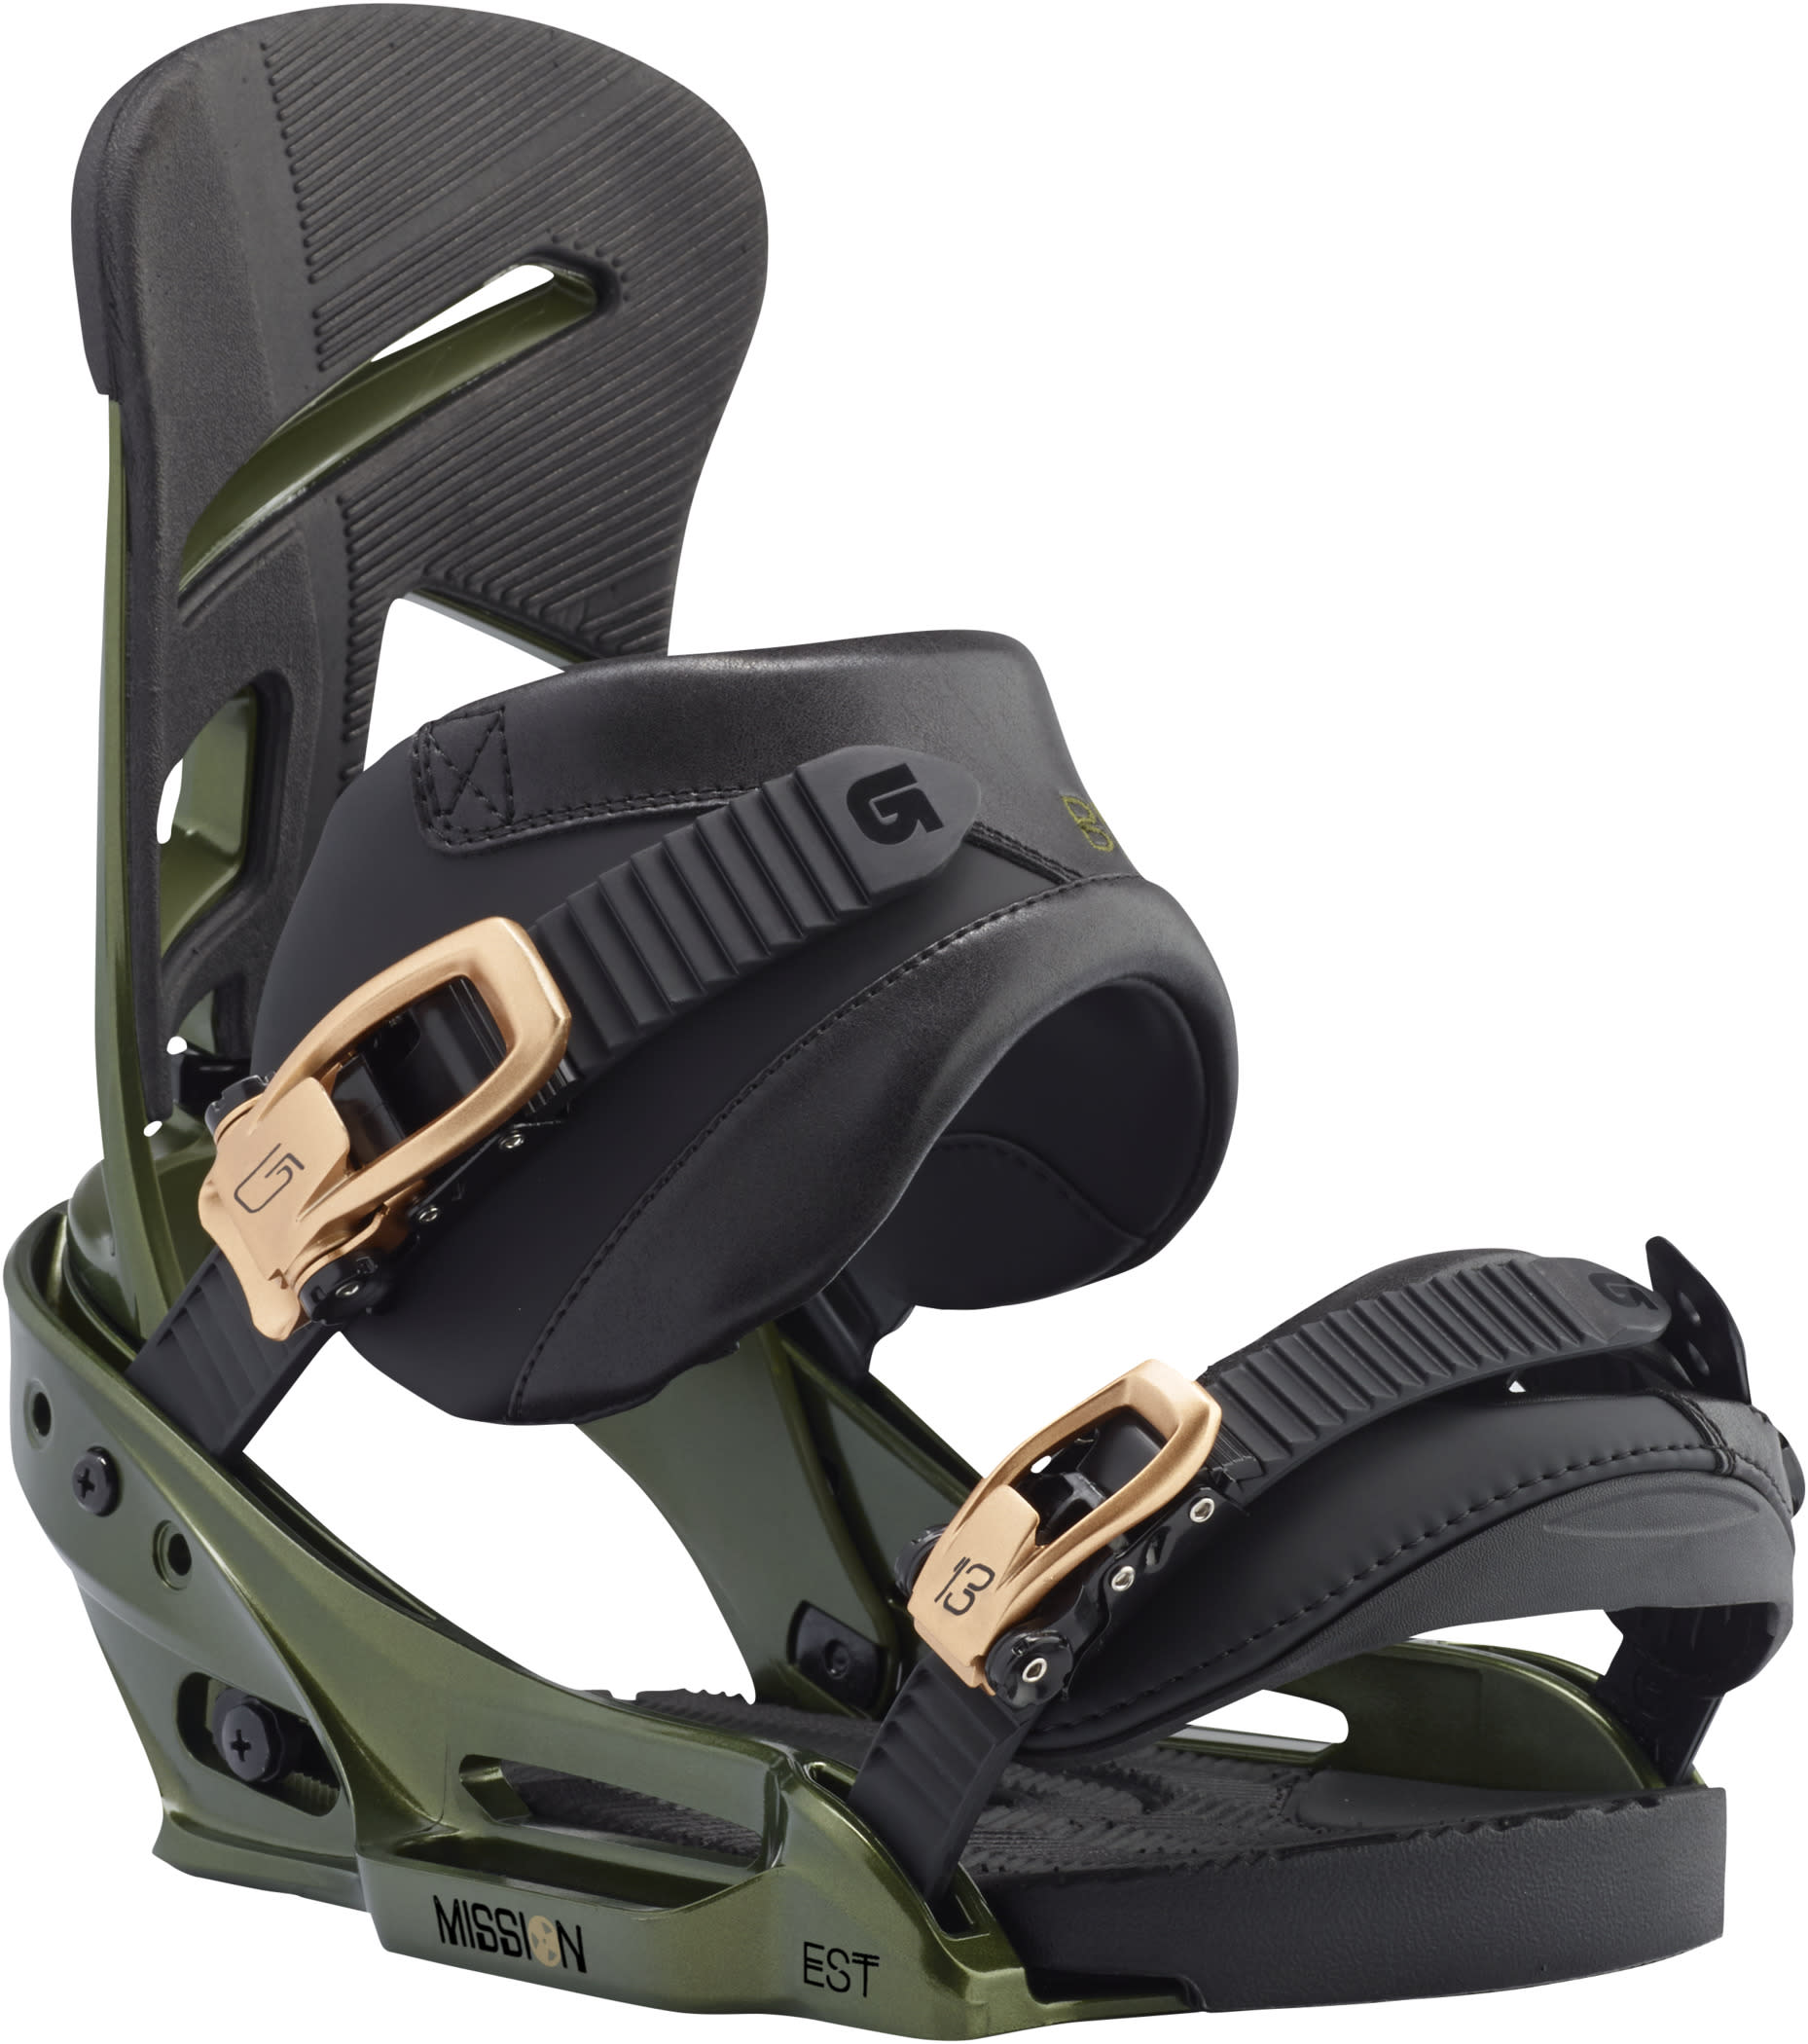 Mission est bindings review